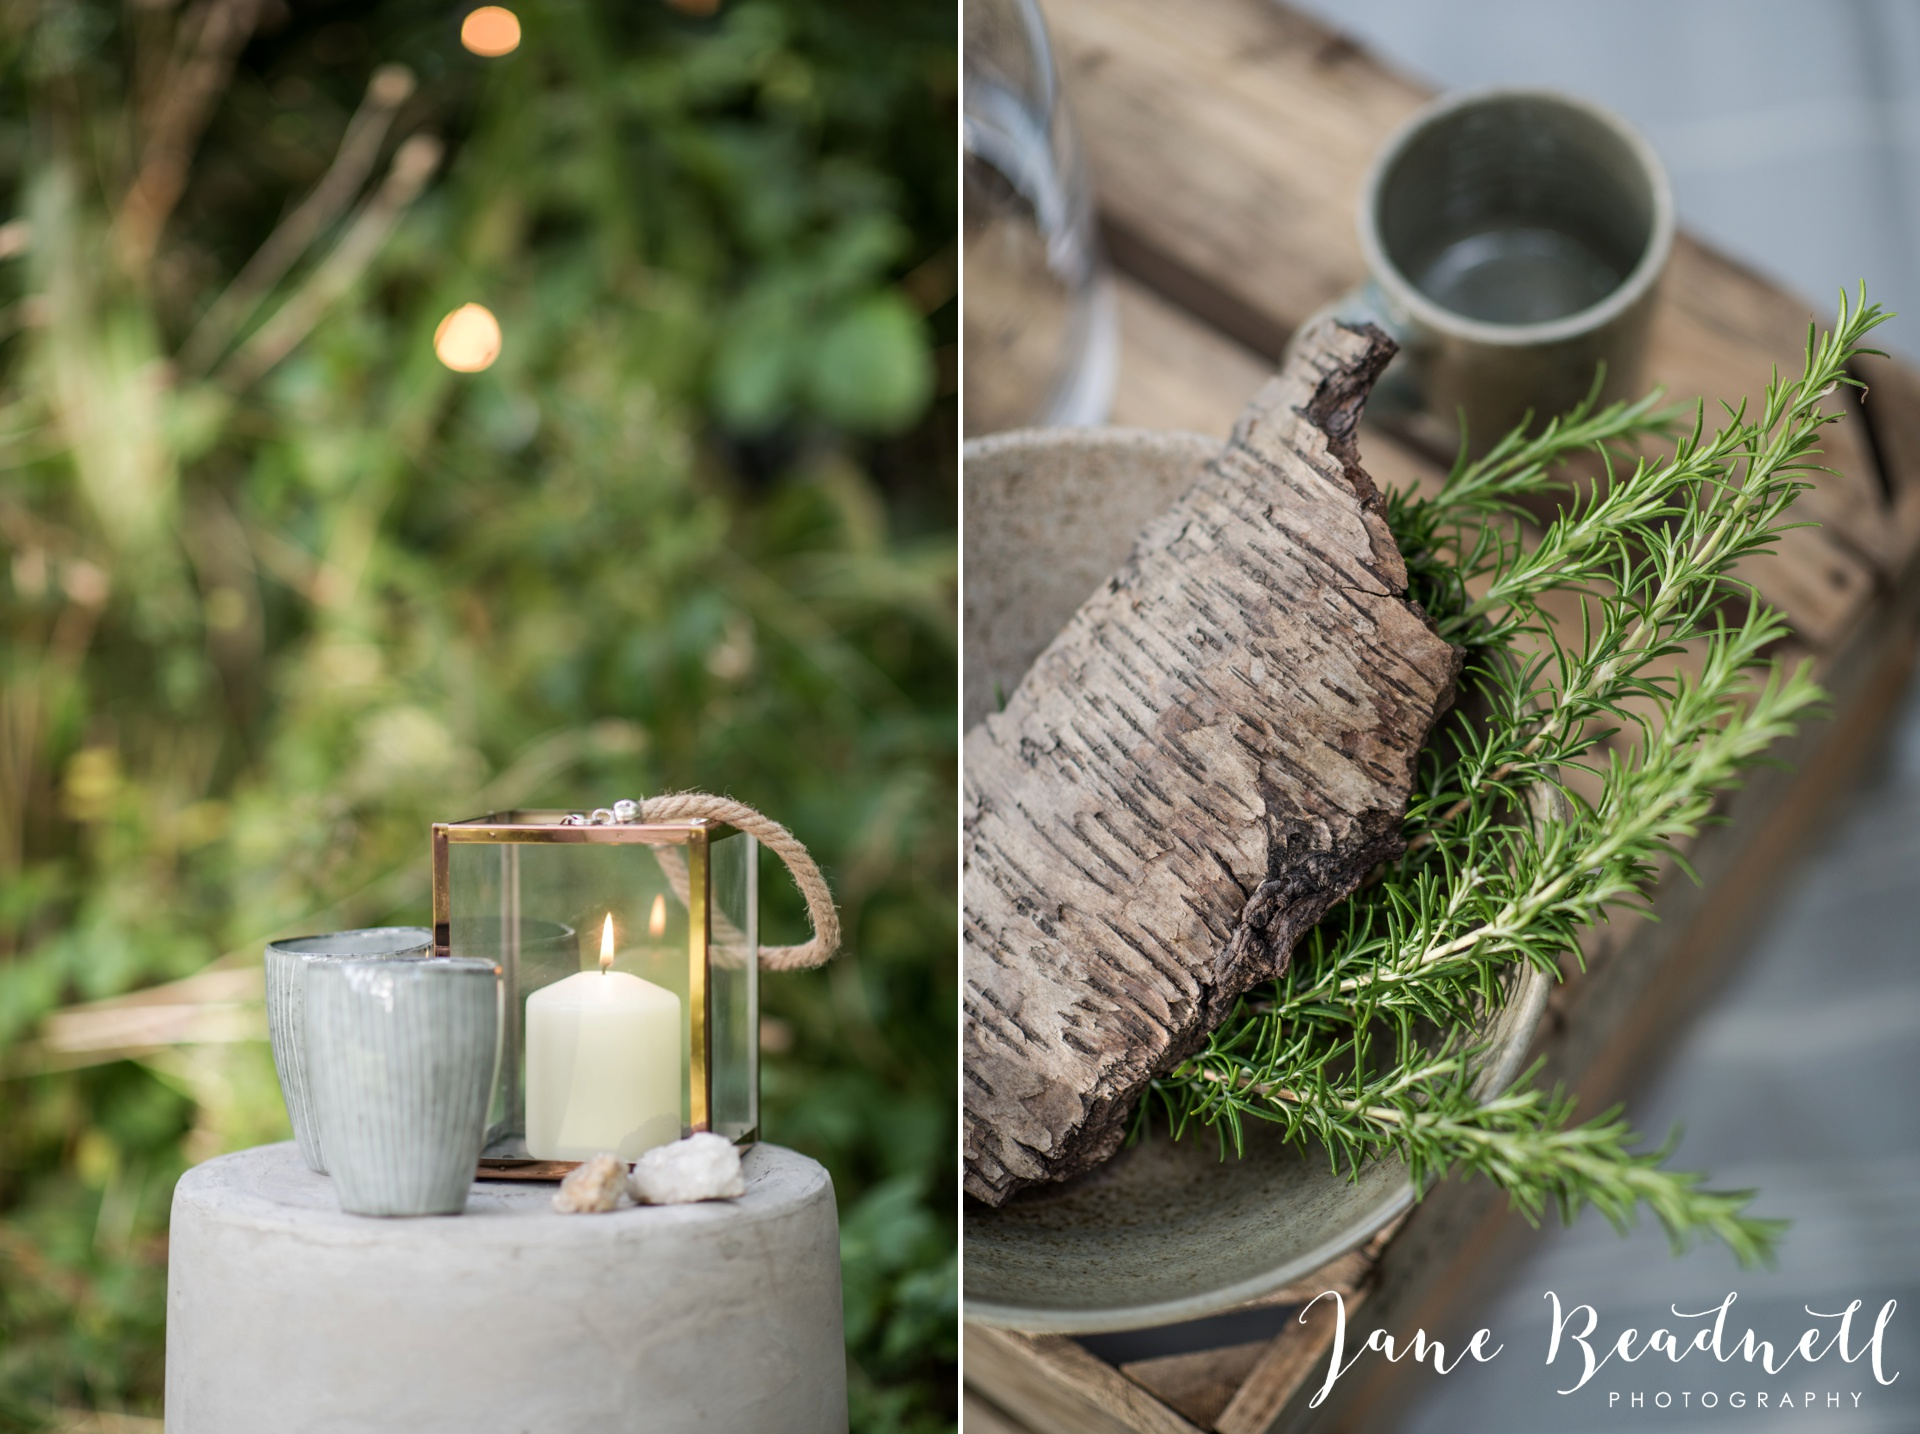 yorkshire-fine-art-wedding-photographer-jane-beadnell-photography-baby-shower-by-forset-found_0029